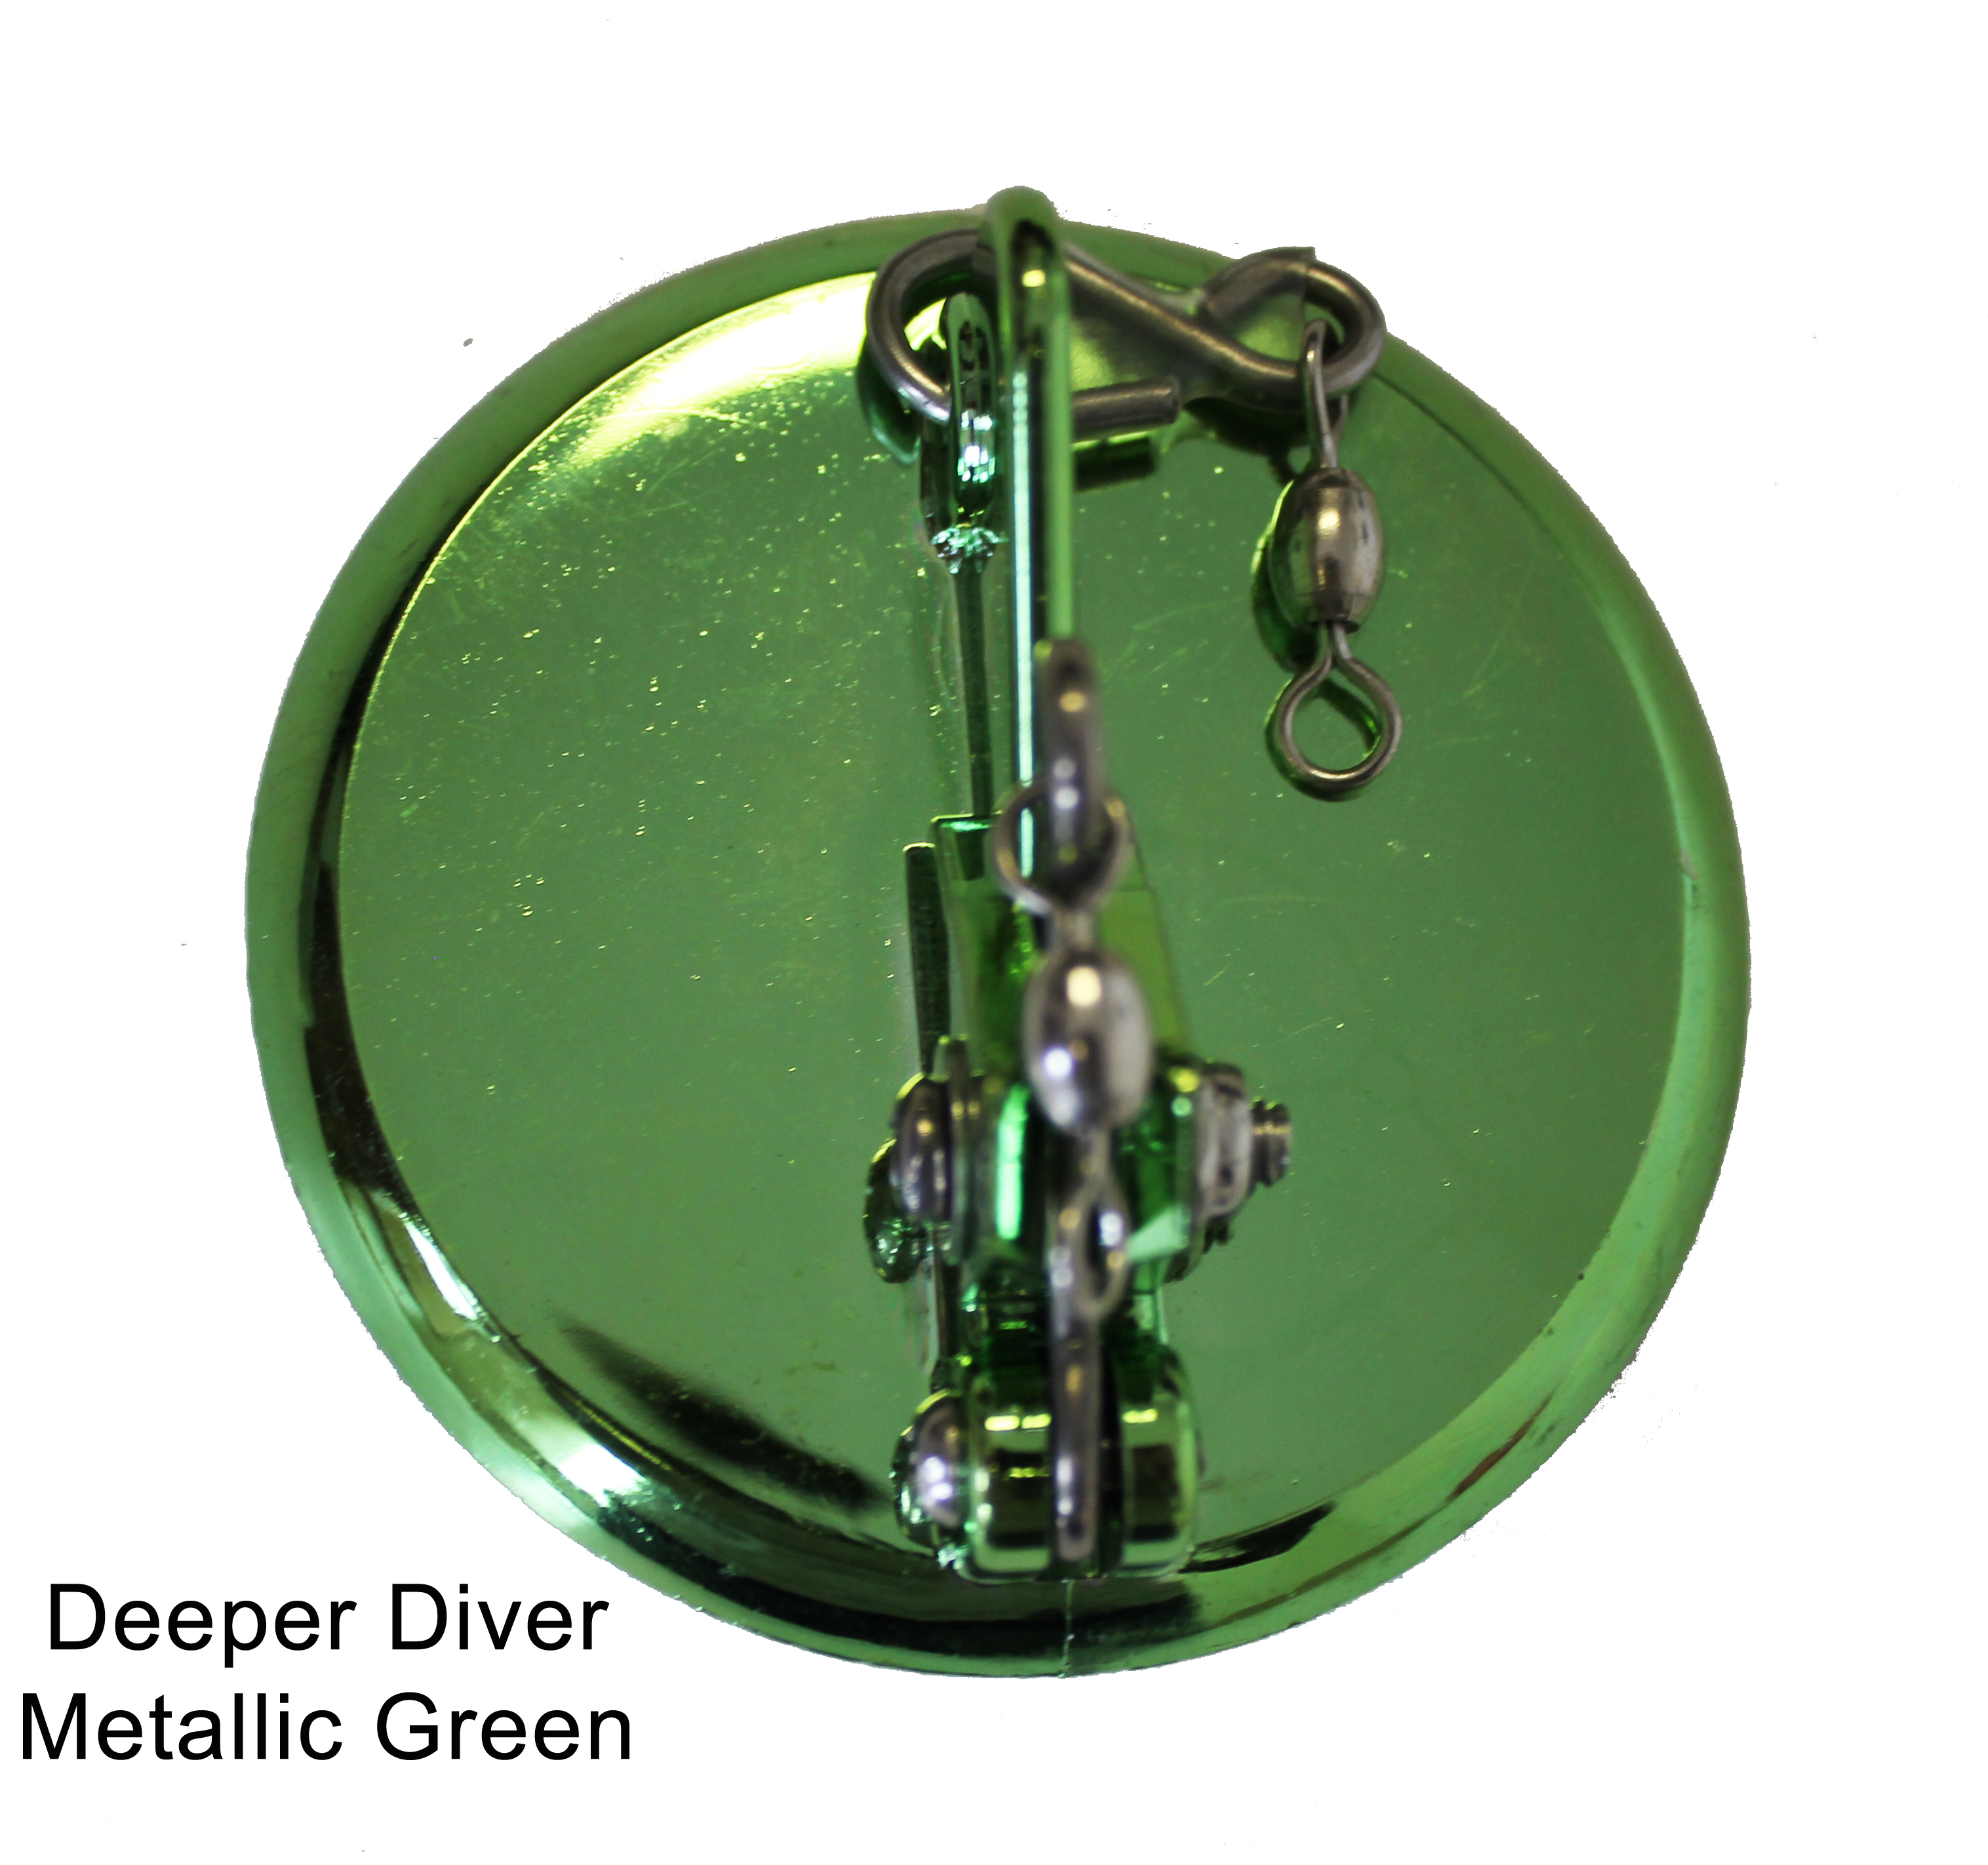 Deeper Diver 65mm Metallic Green